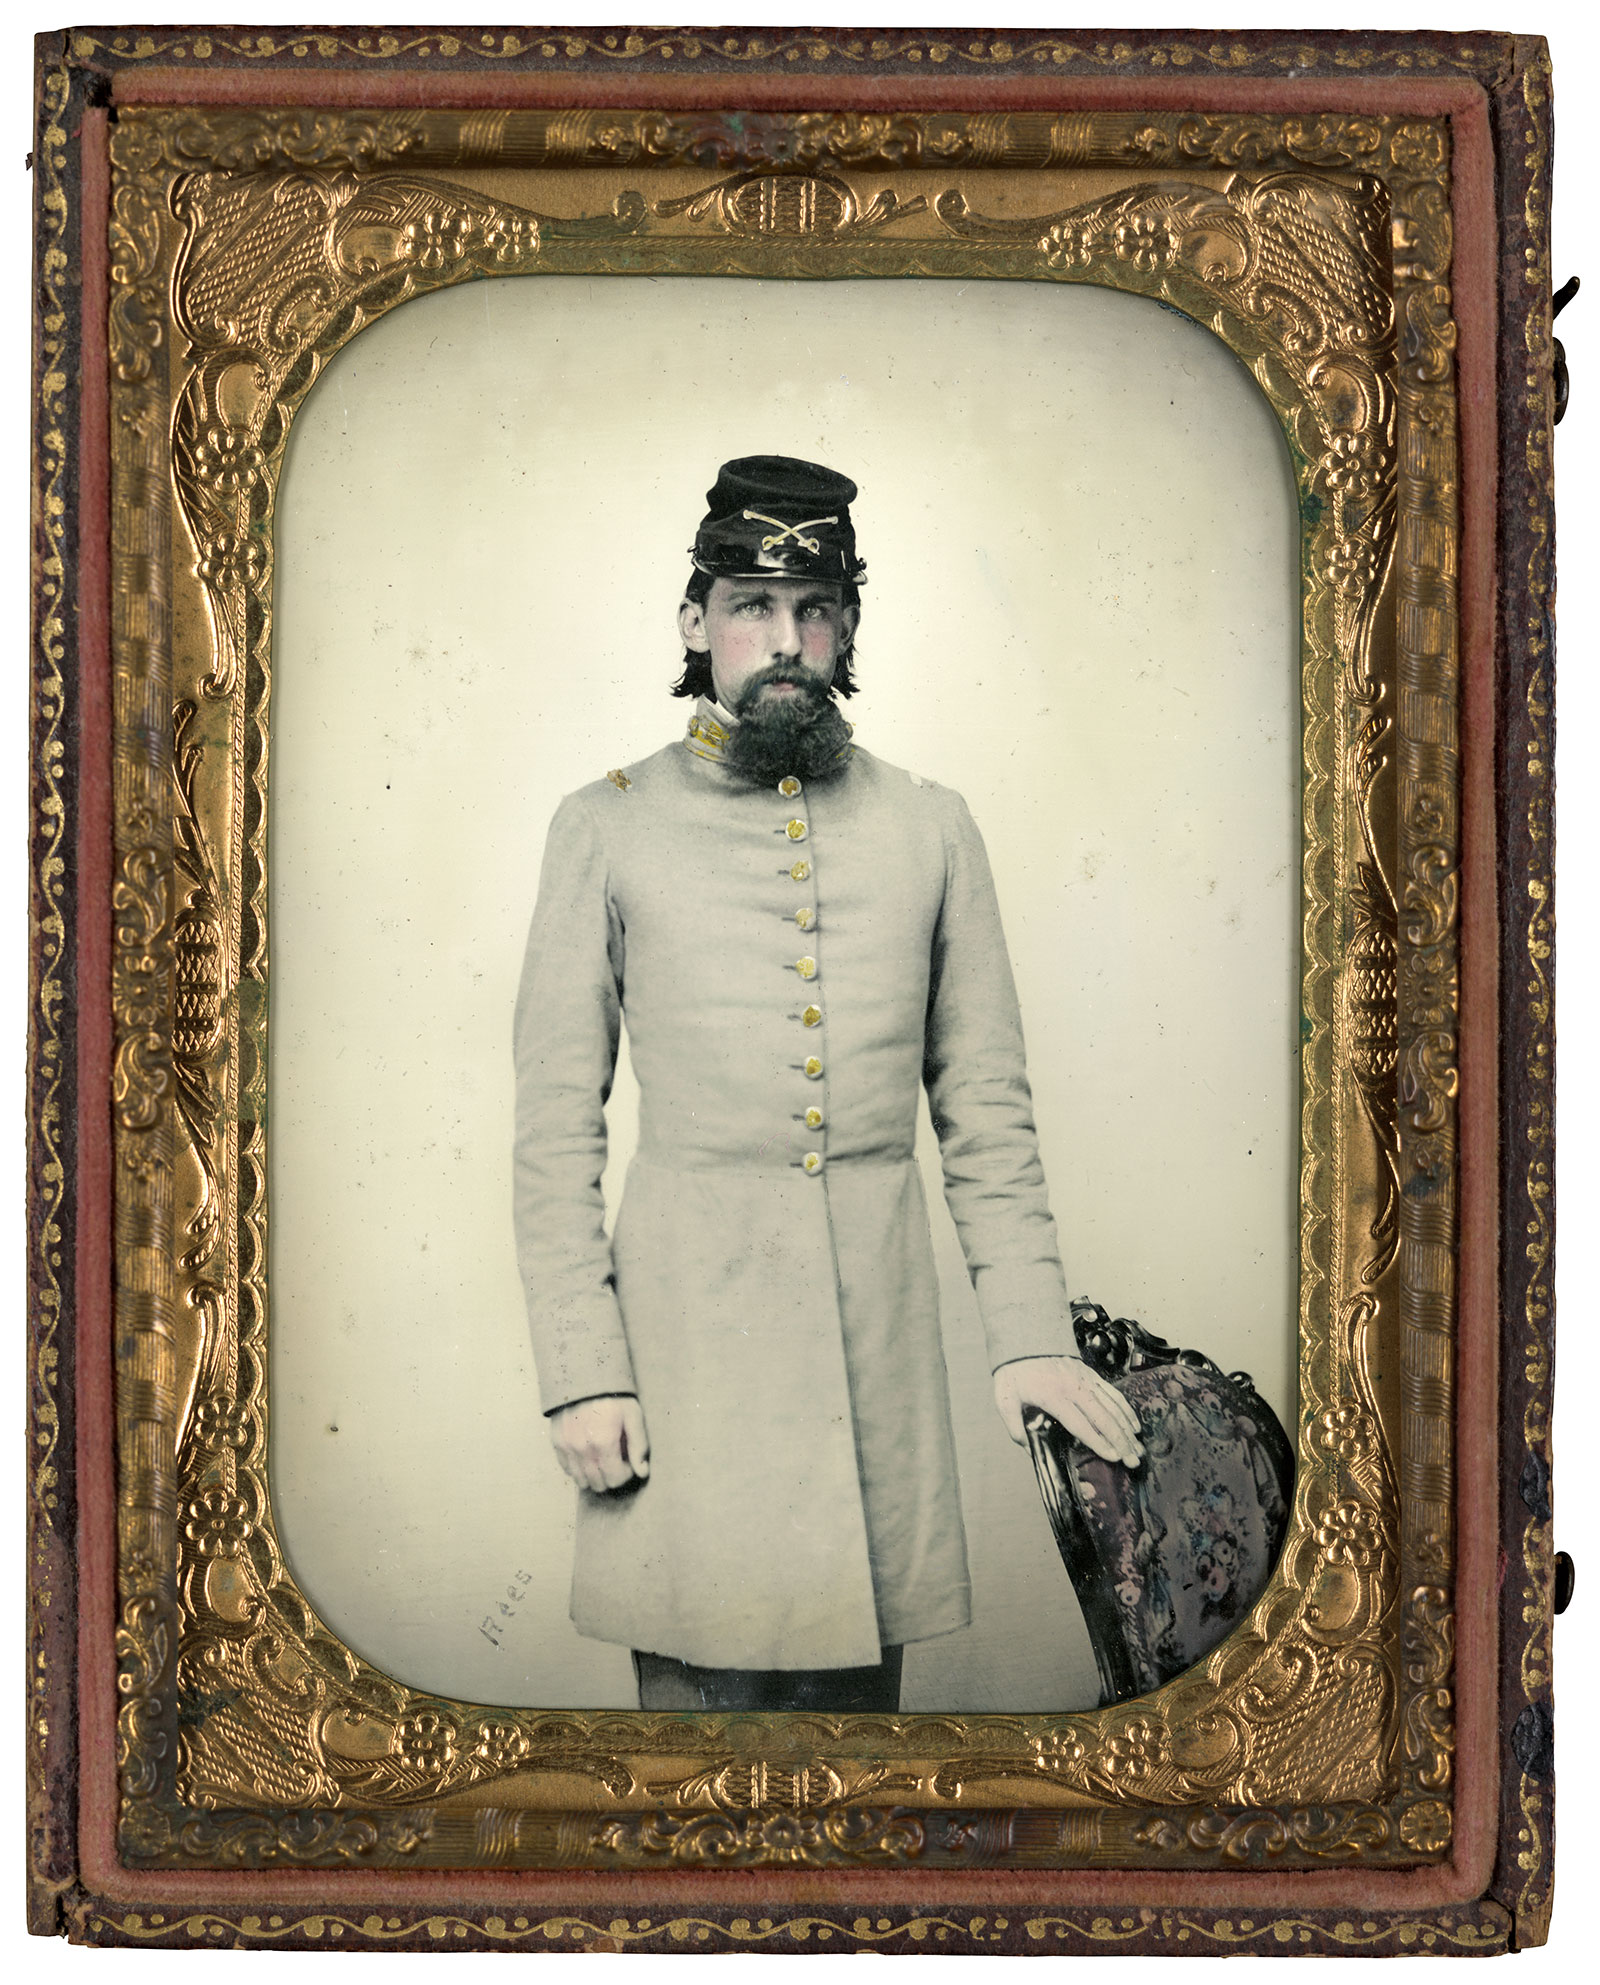 Quarter-plate ambrotype by Charles R. Rees of Richmond, Va. The Liljenquist Family Collection, Library of Congress.